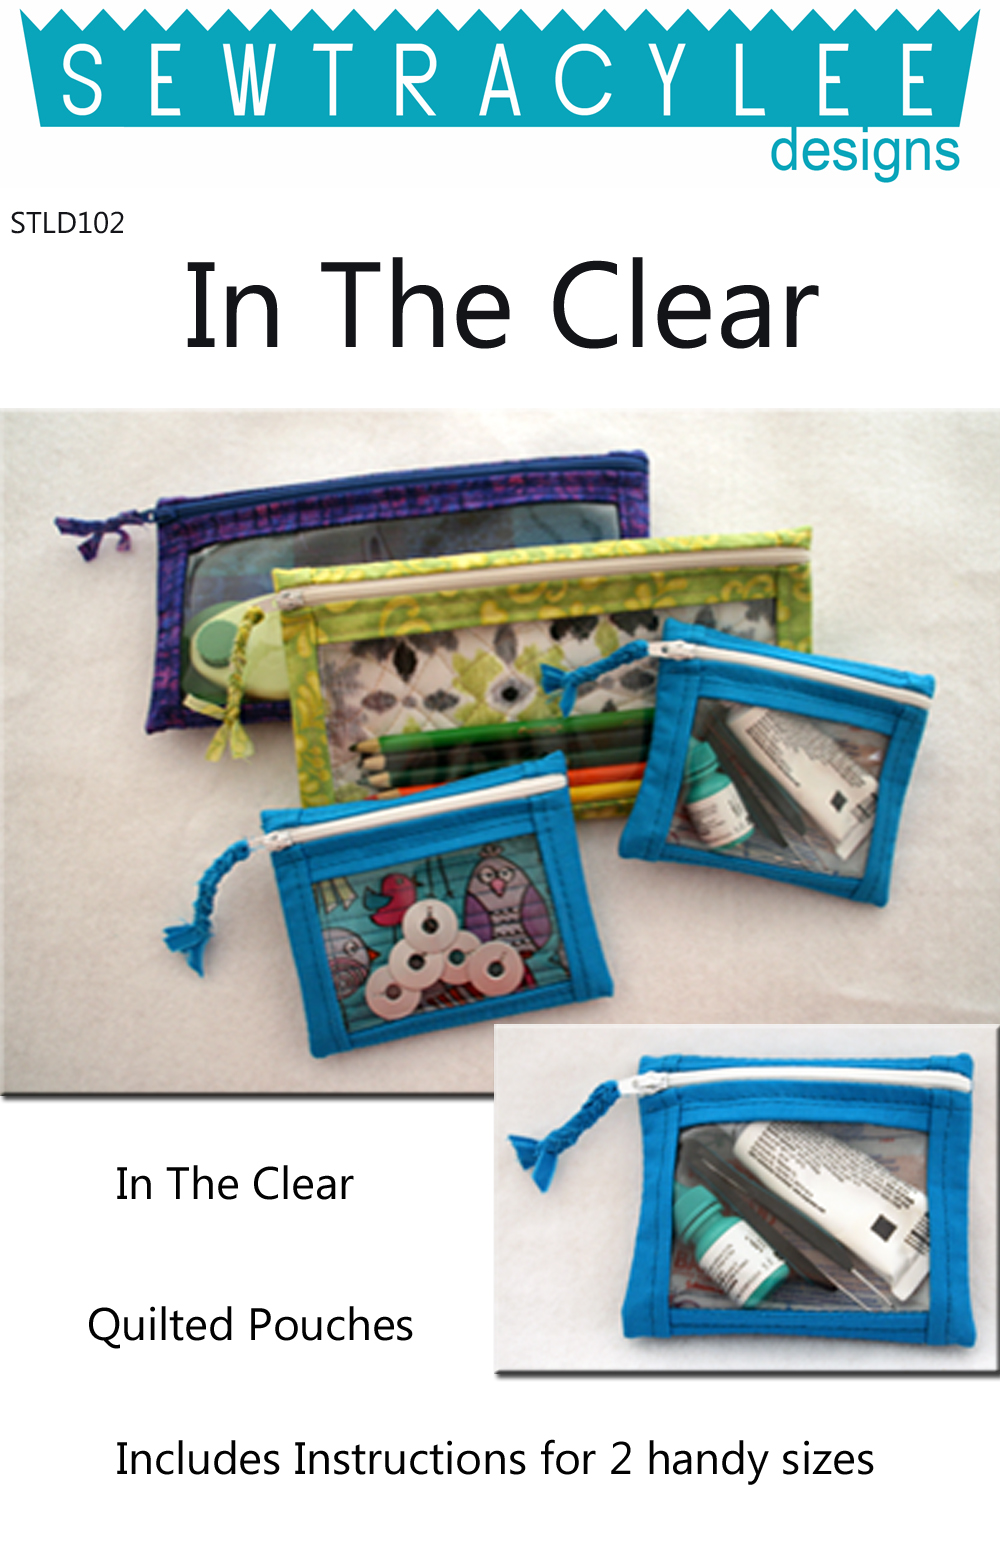 In-The-Clear-sewing-pattern-Sew-TracyLee-Designs-front